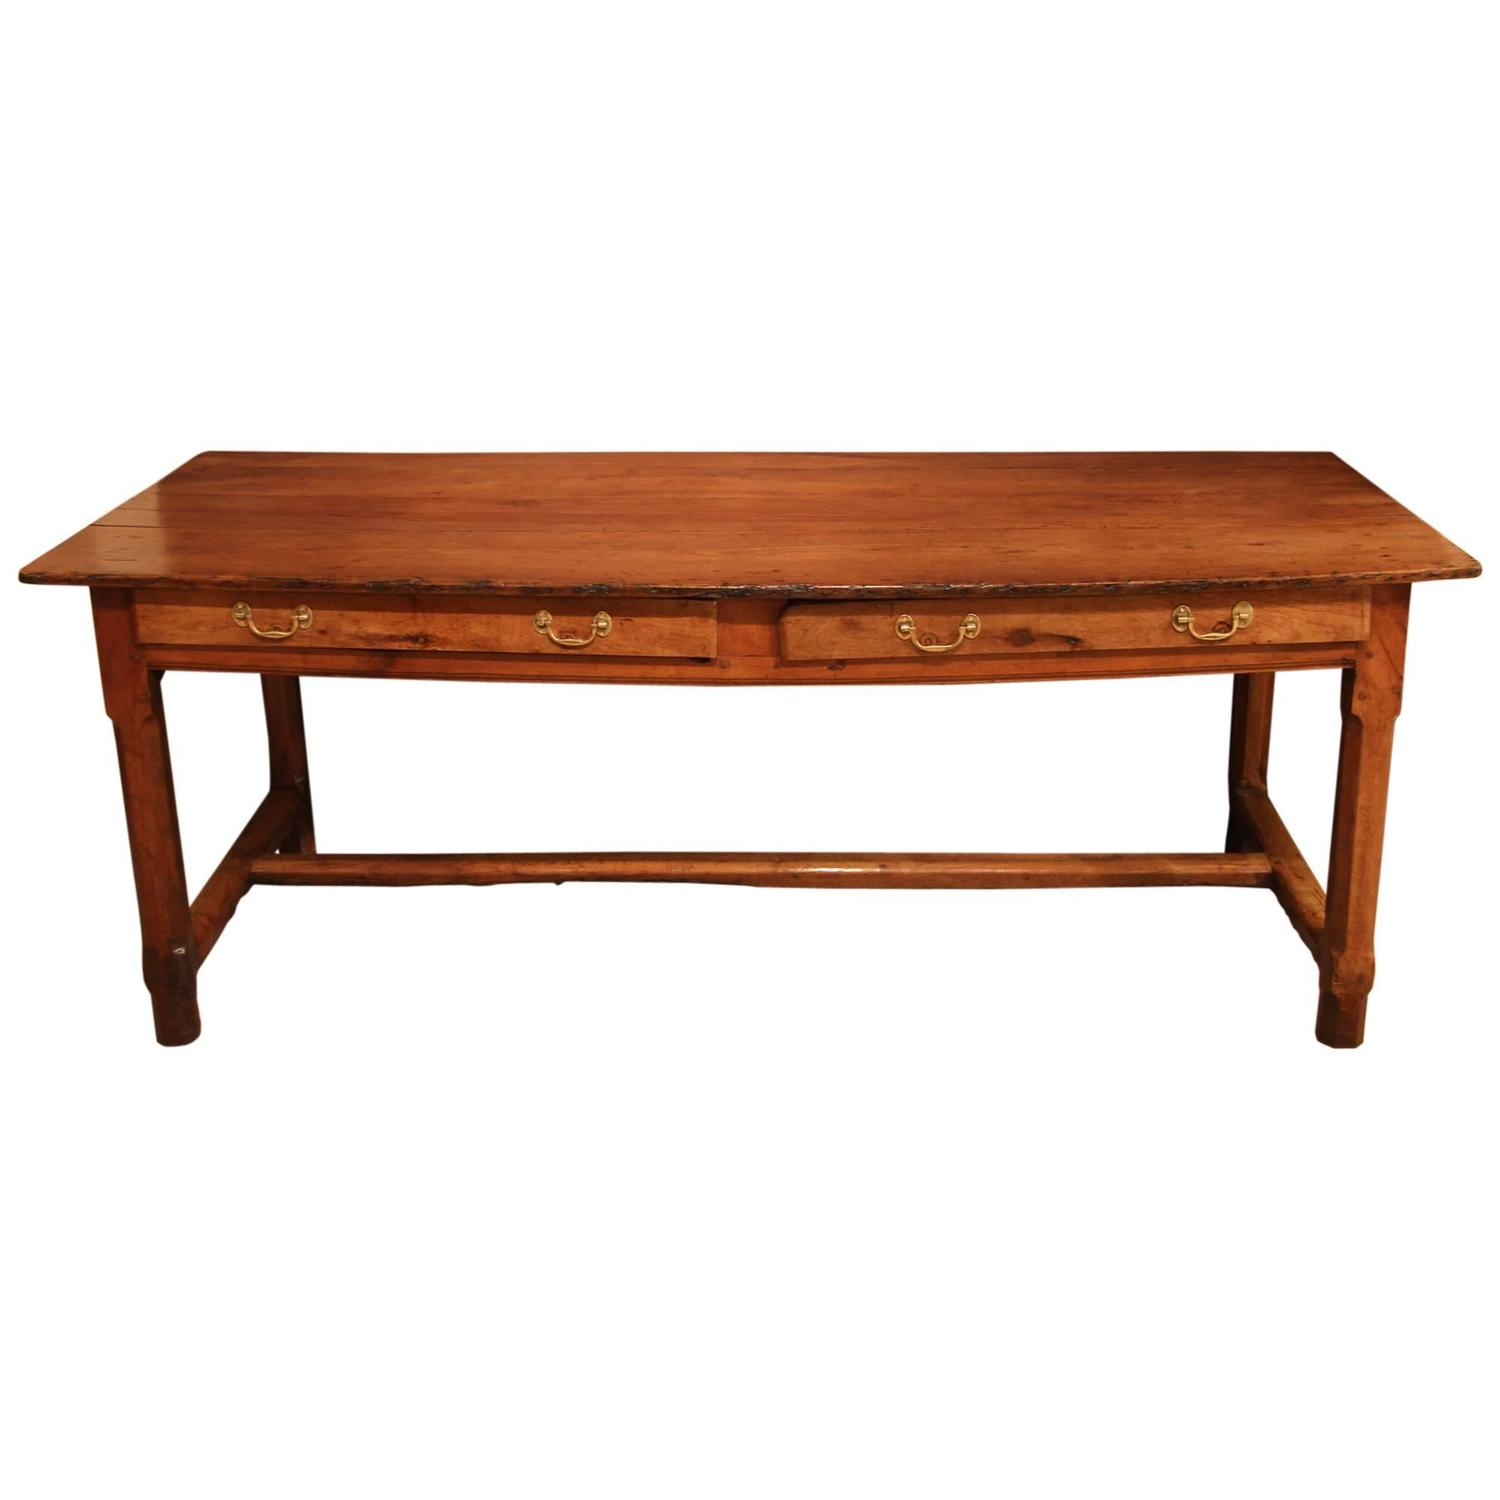 Early 19th Century Cherrywood French Farmhouse Table At